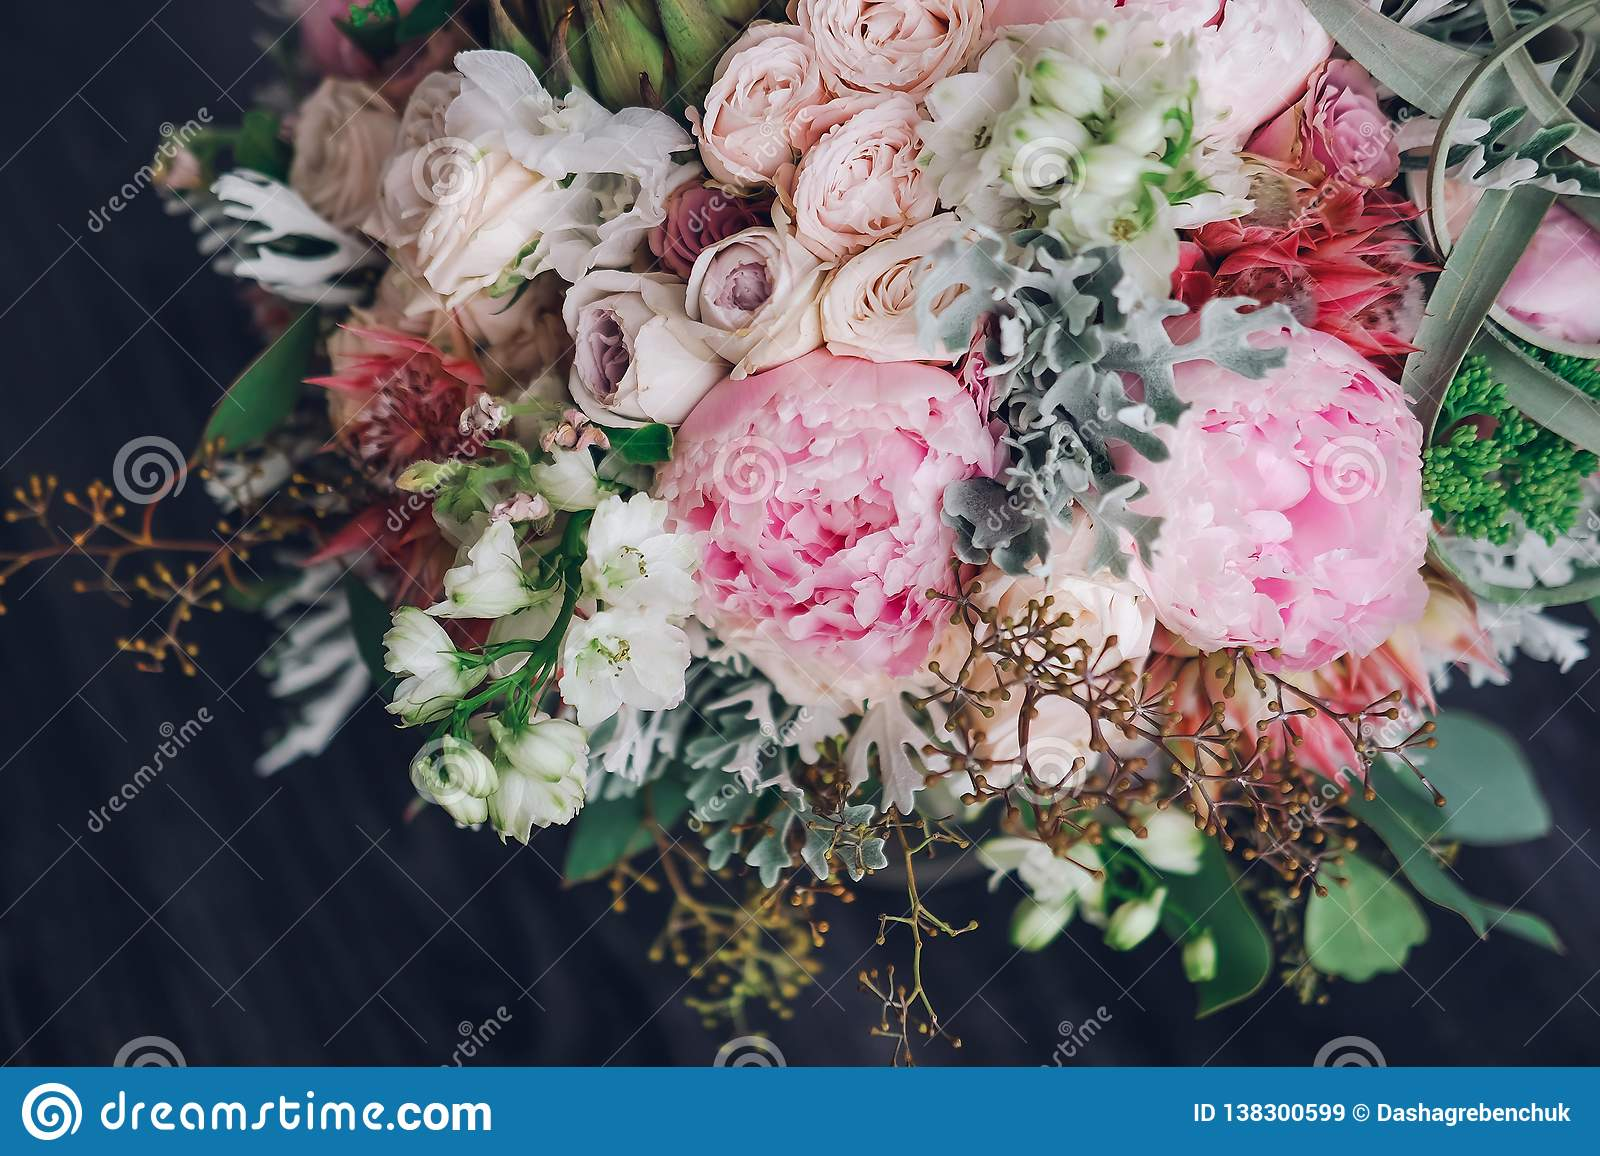 Beautiful Wedding Bouquet Of Spring Flowers In Pastel Tones Stock Image Image Of Elegance Accessory 138300599